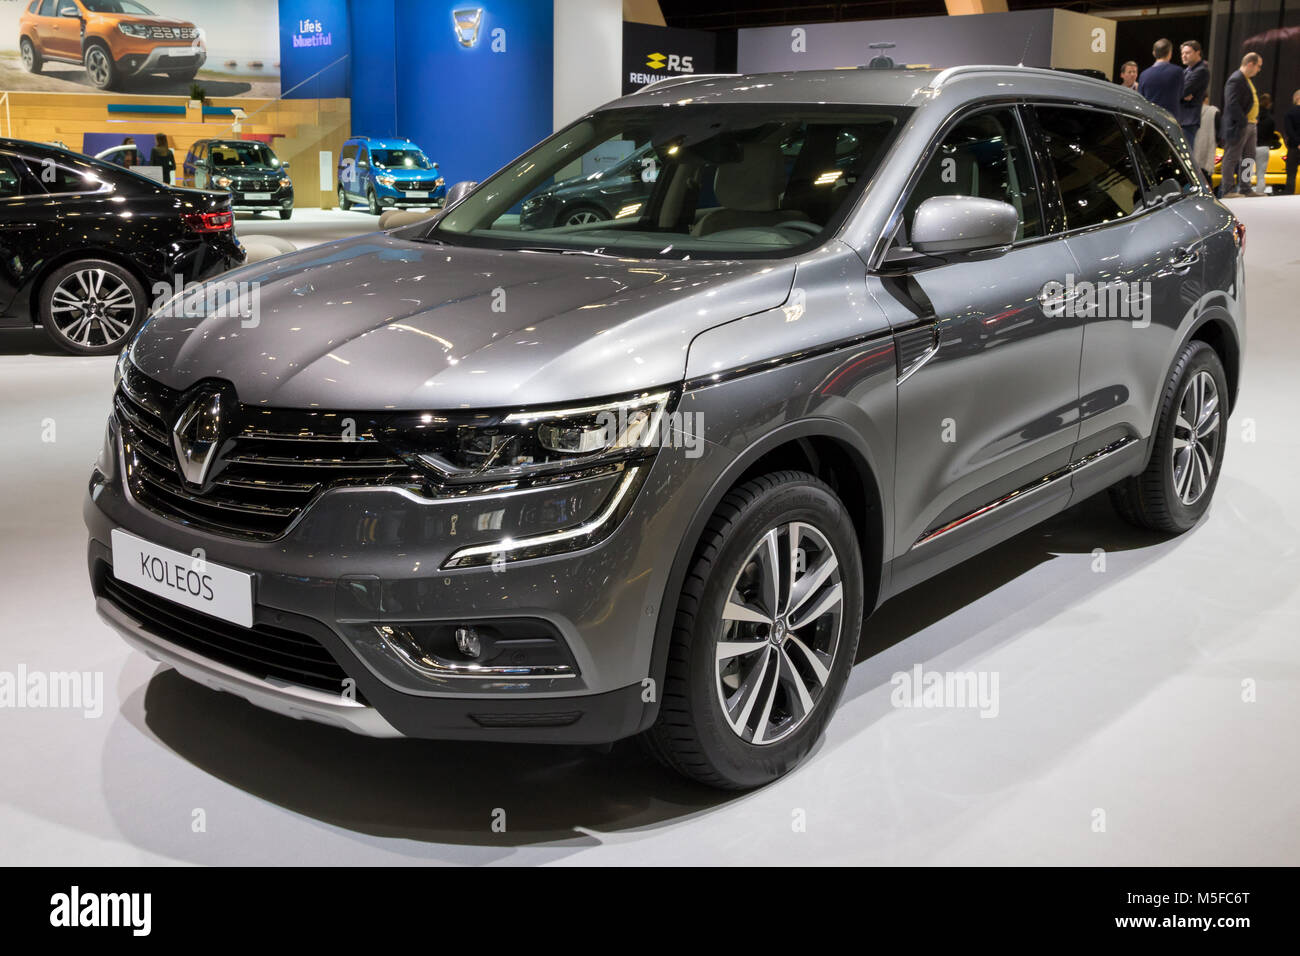 brussels jan 10 2018 renault koleos suv car shown at the brussels stock photo 175515840 alamy. Black Bedroom Furniture Sets. Home Design Ideas